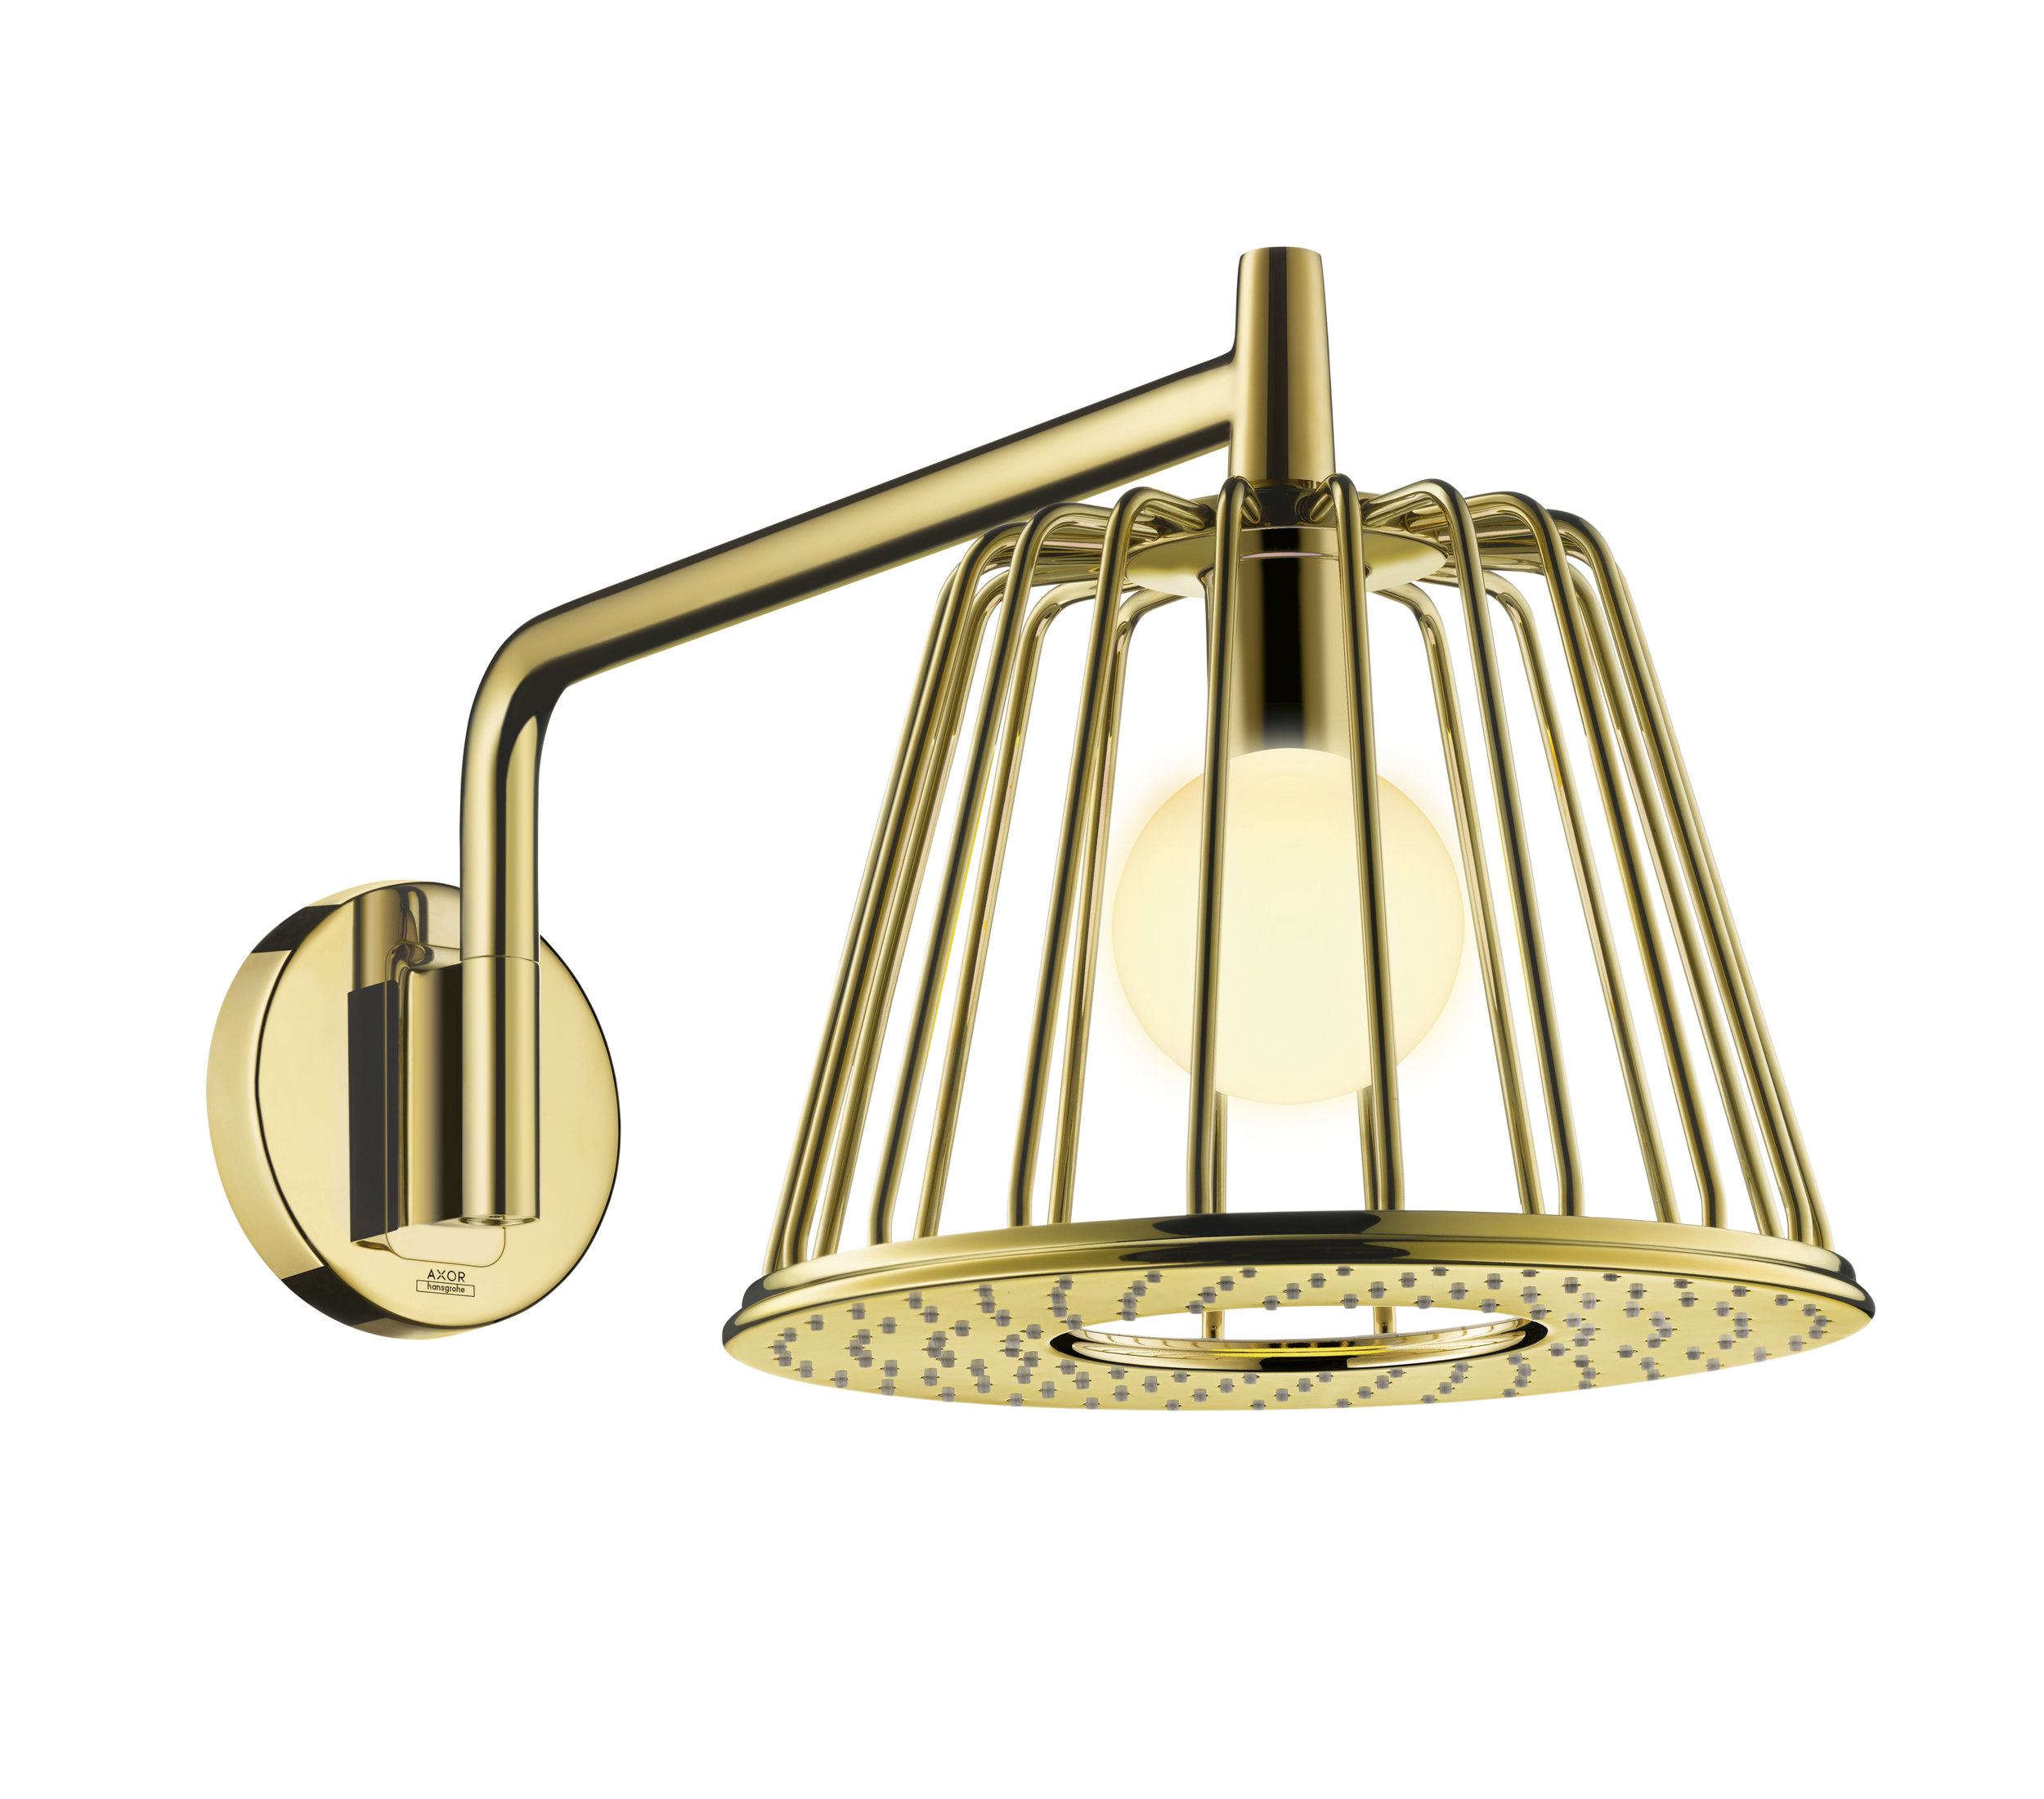 AXOR_LampShower_by Nendo_Wall_Gold.jpg